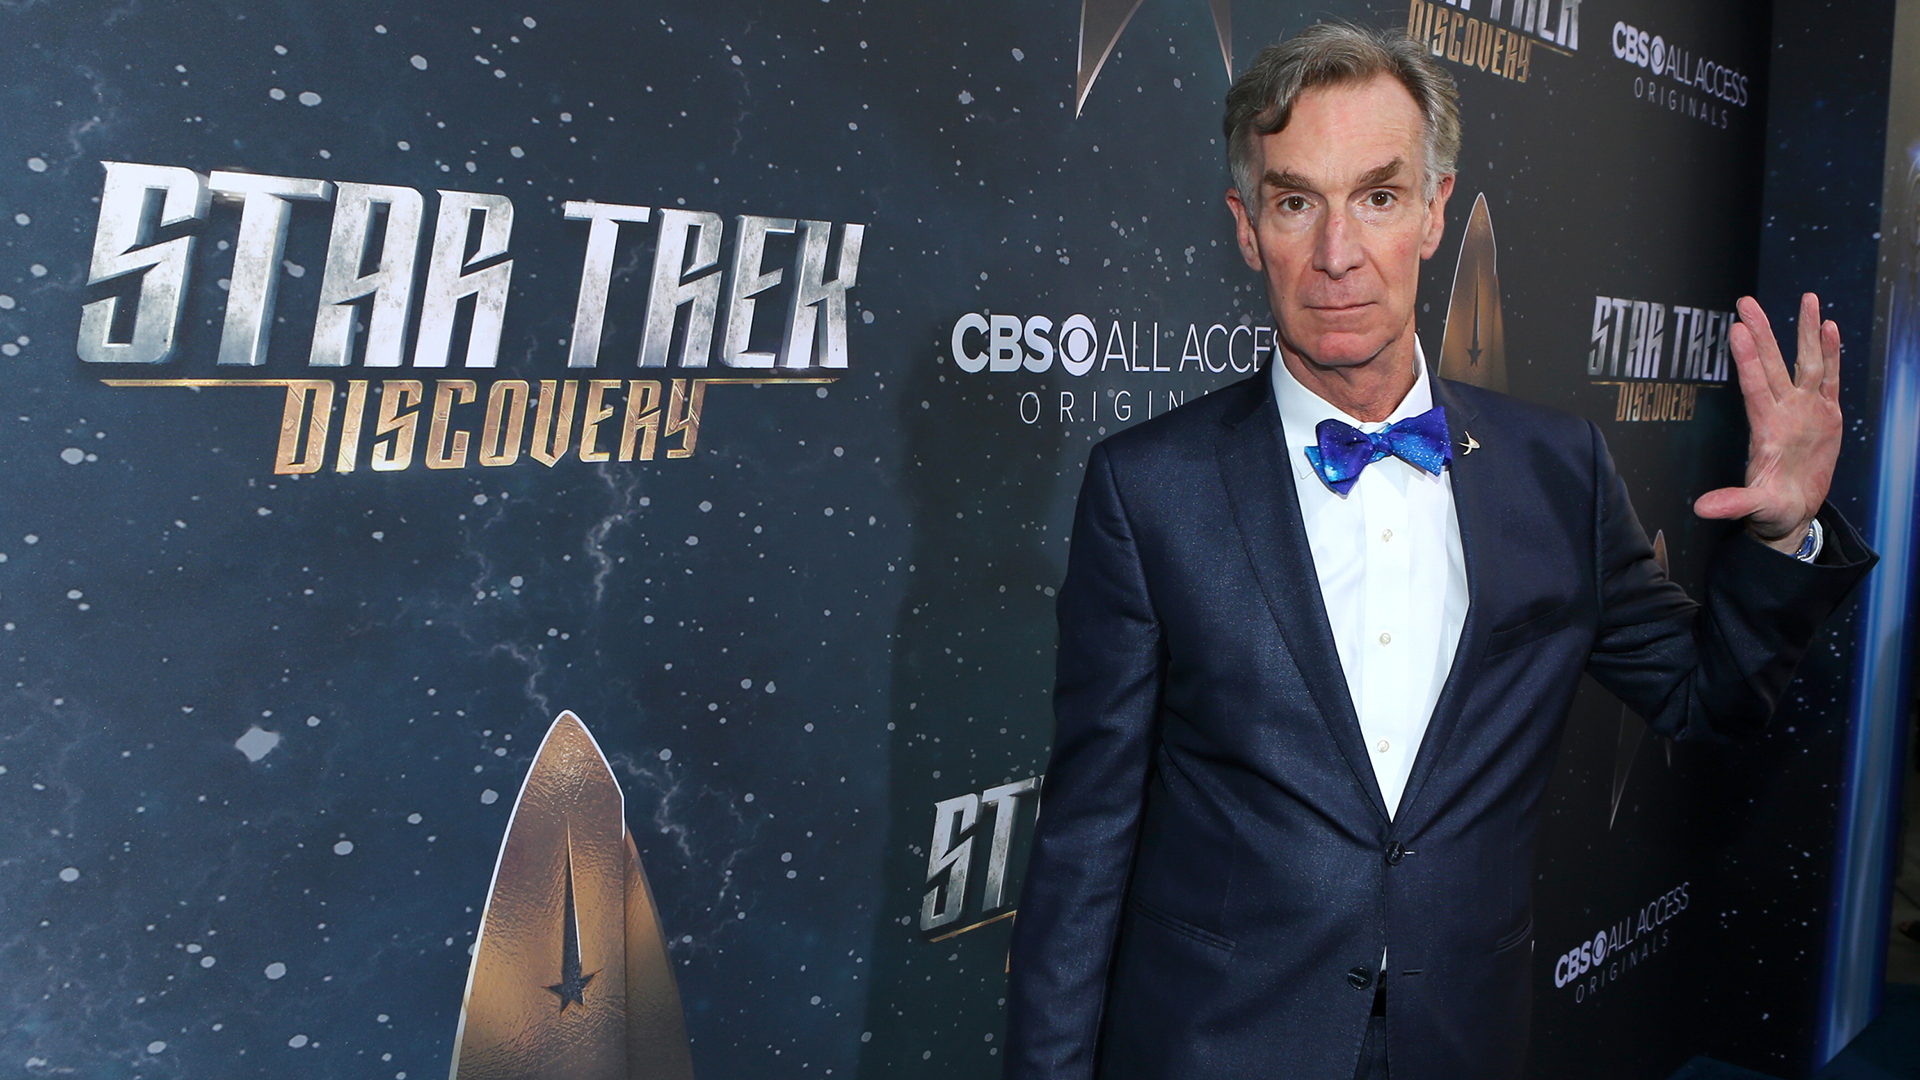 Scientist and TV personality Bill Nye